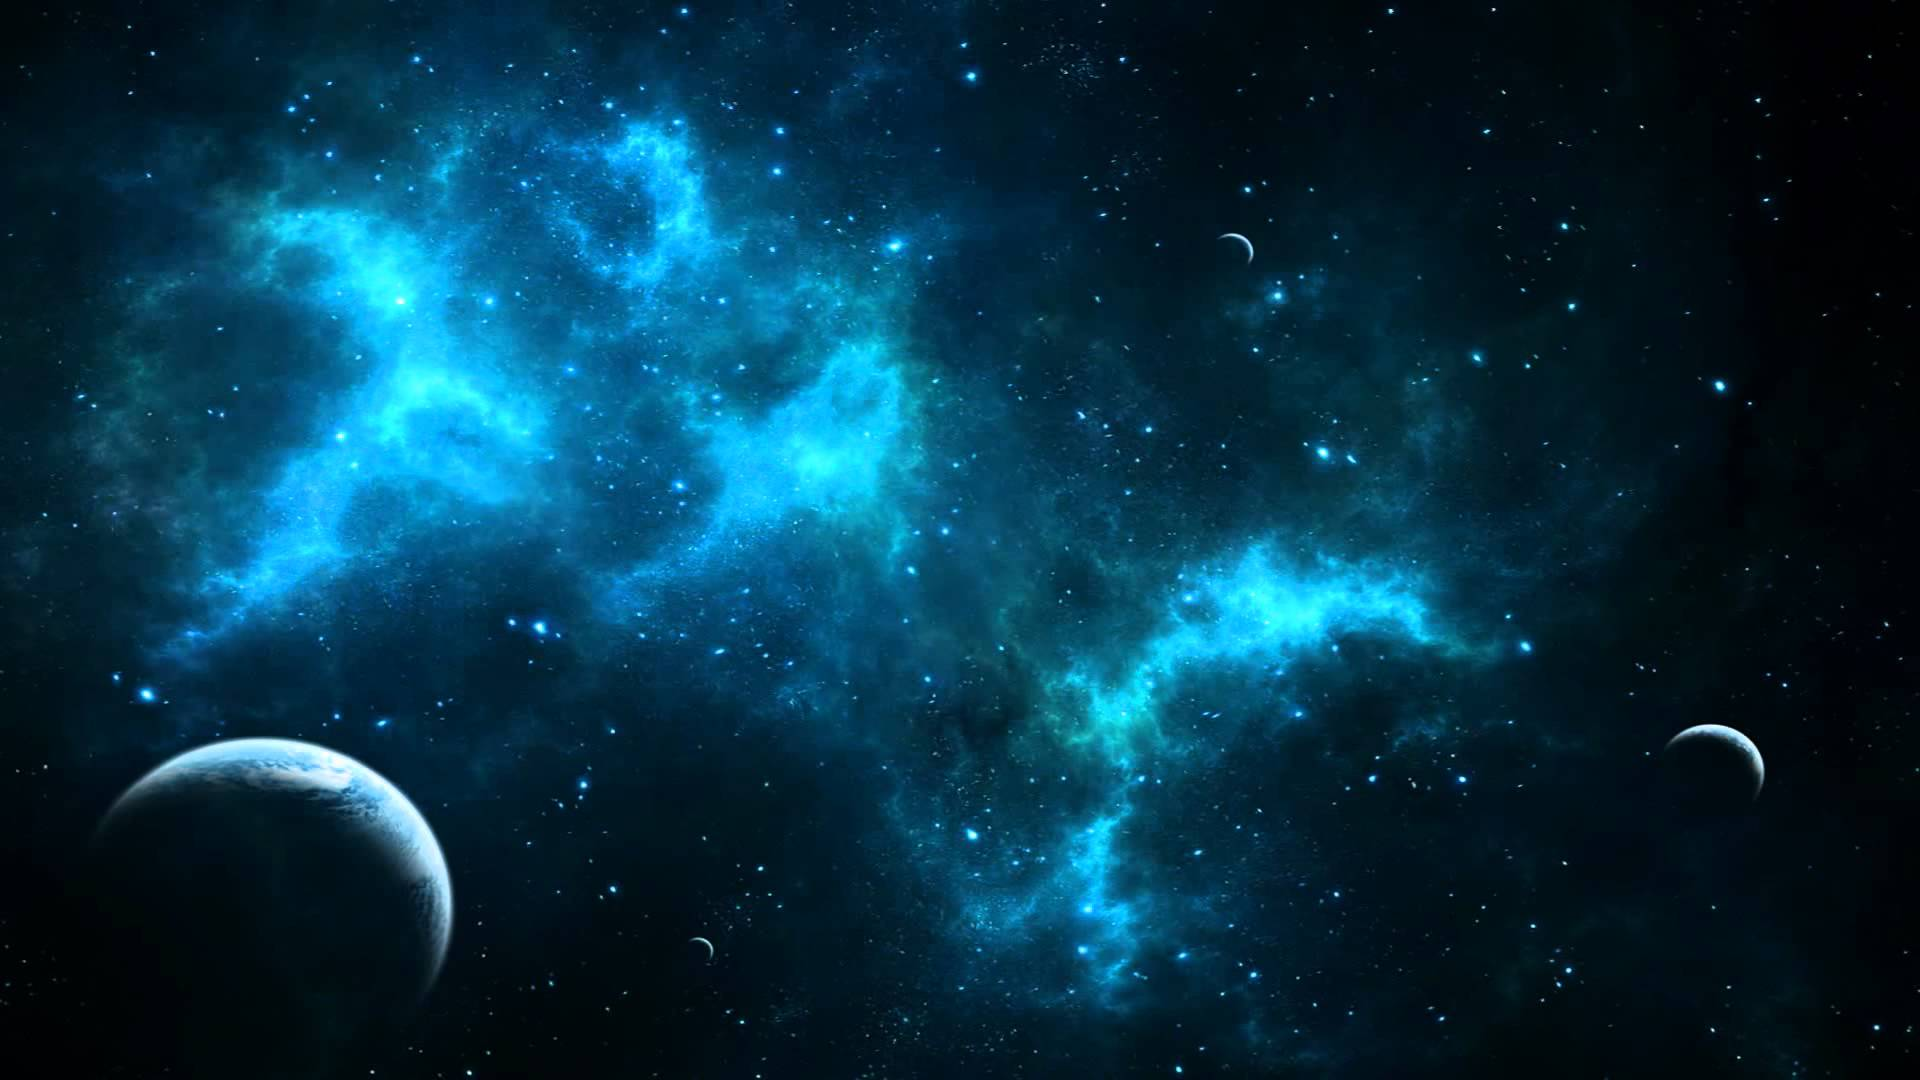 Space Animated Wallpaper